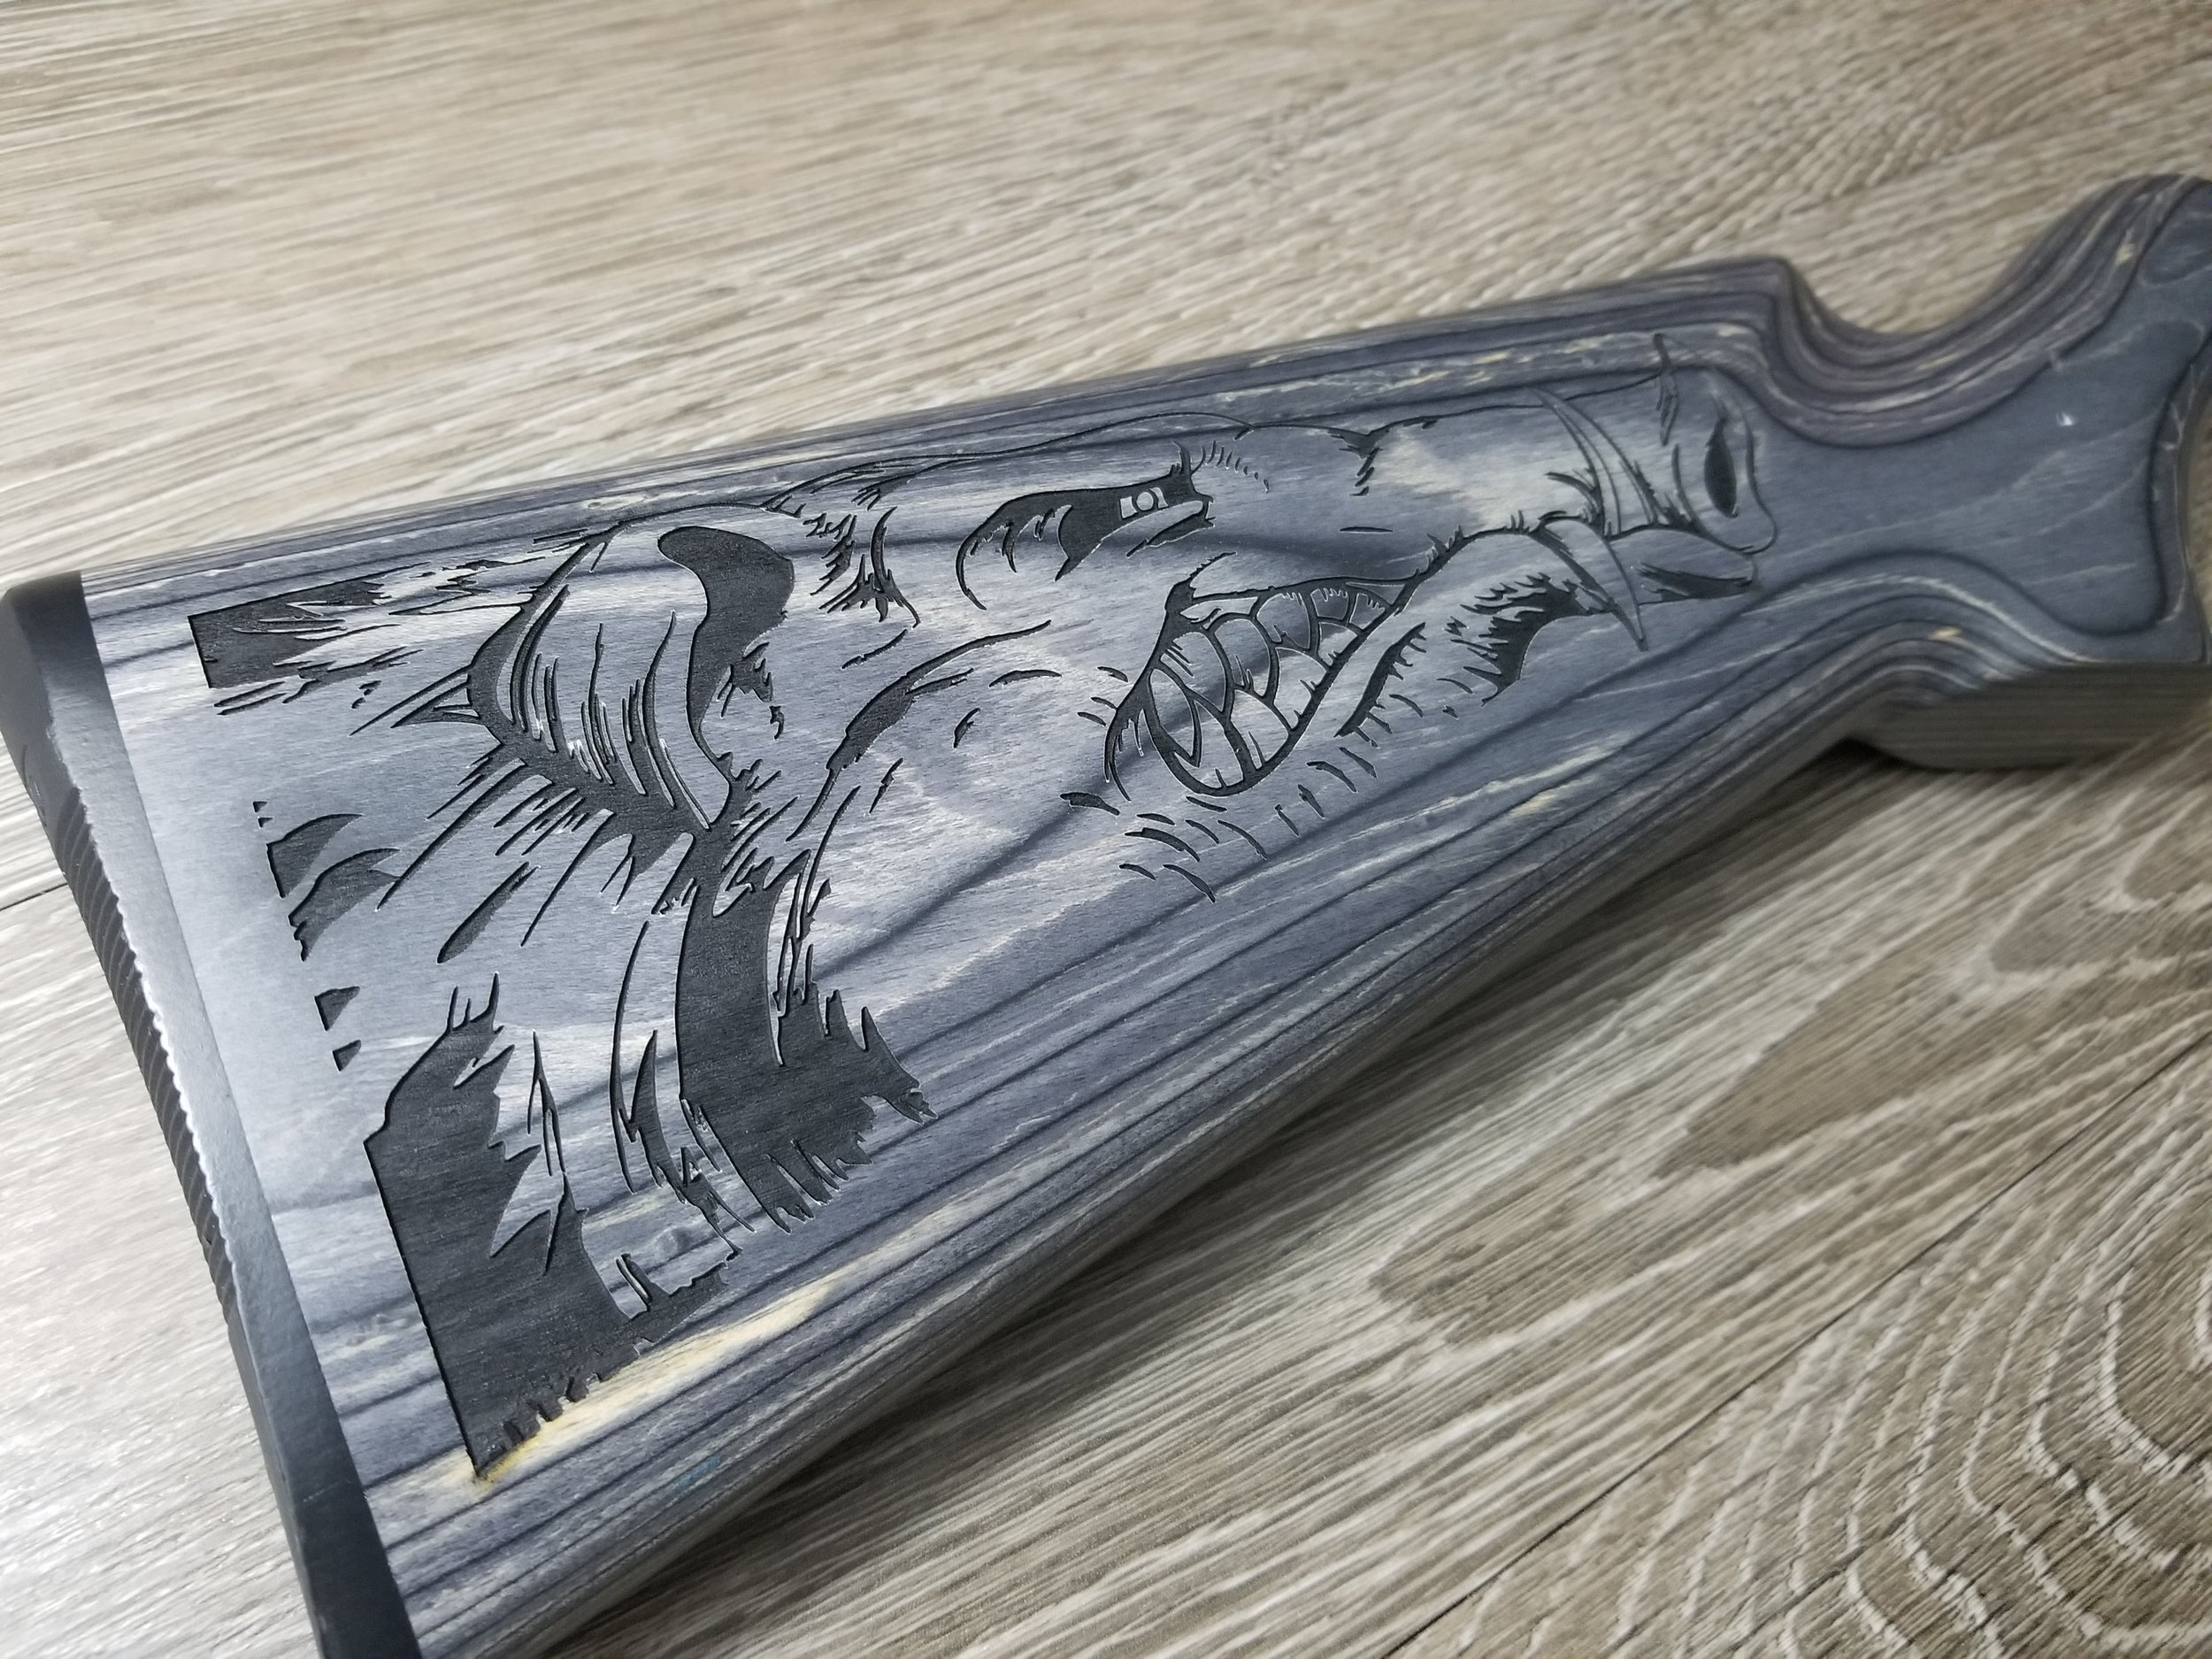 Custom Engraved Rifle Stock - Firearm Projects from Engrave It Houston